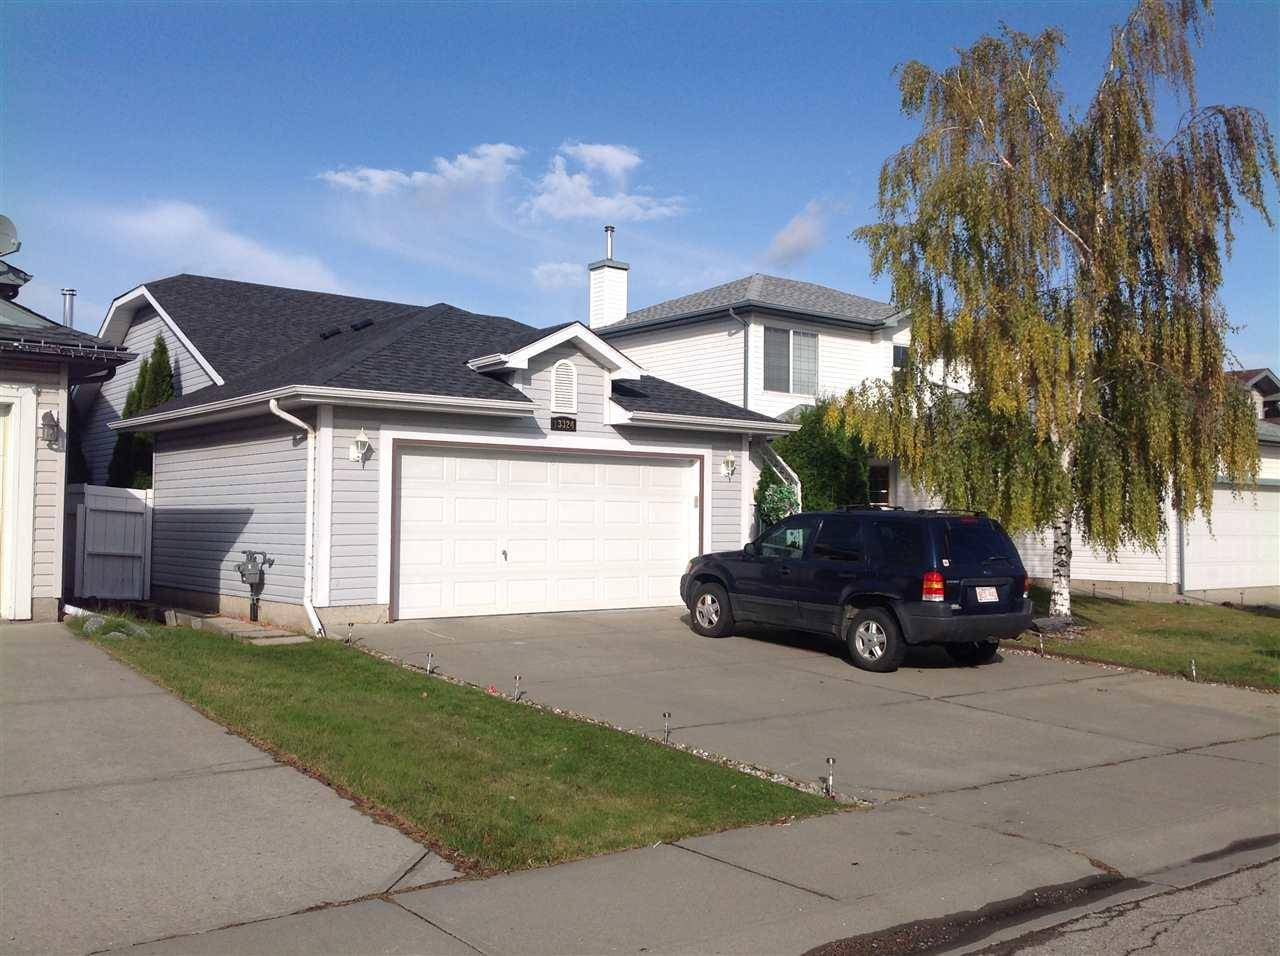 House for sale at 13324 154a Ave Nw Edmonton Alberta - MLS: E4177266